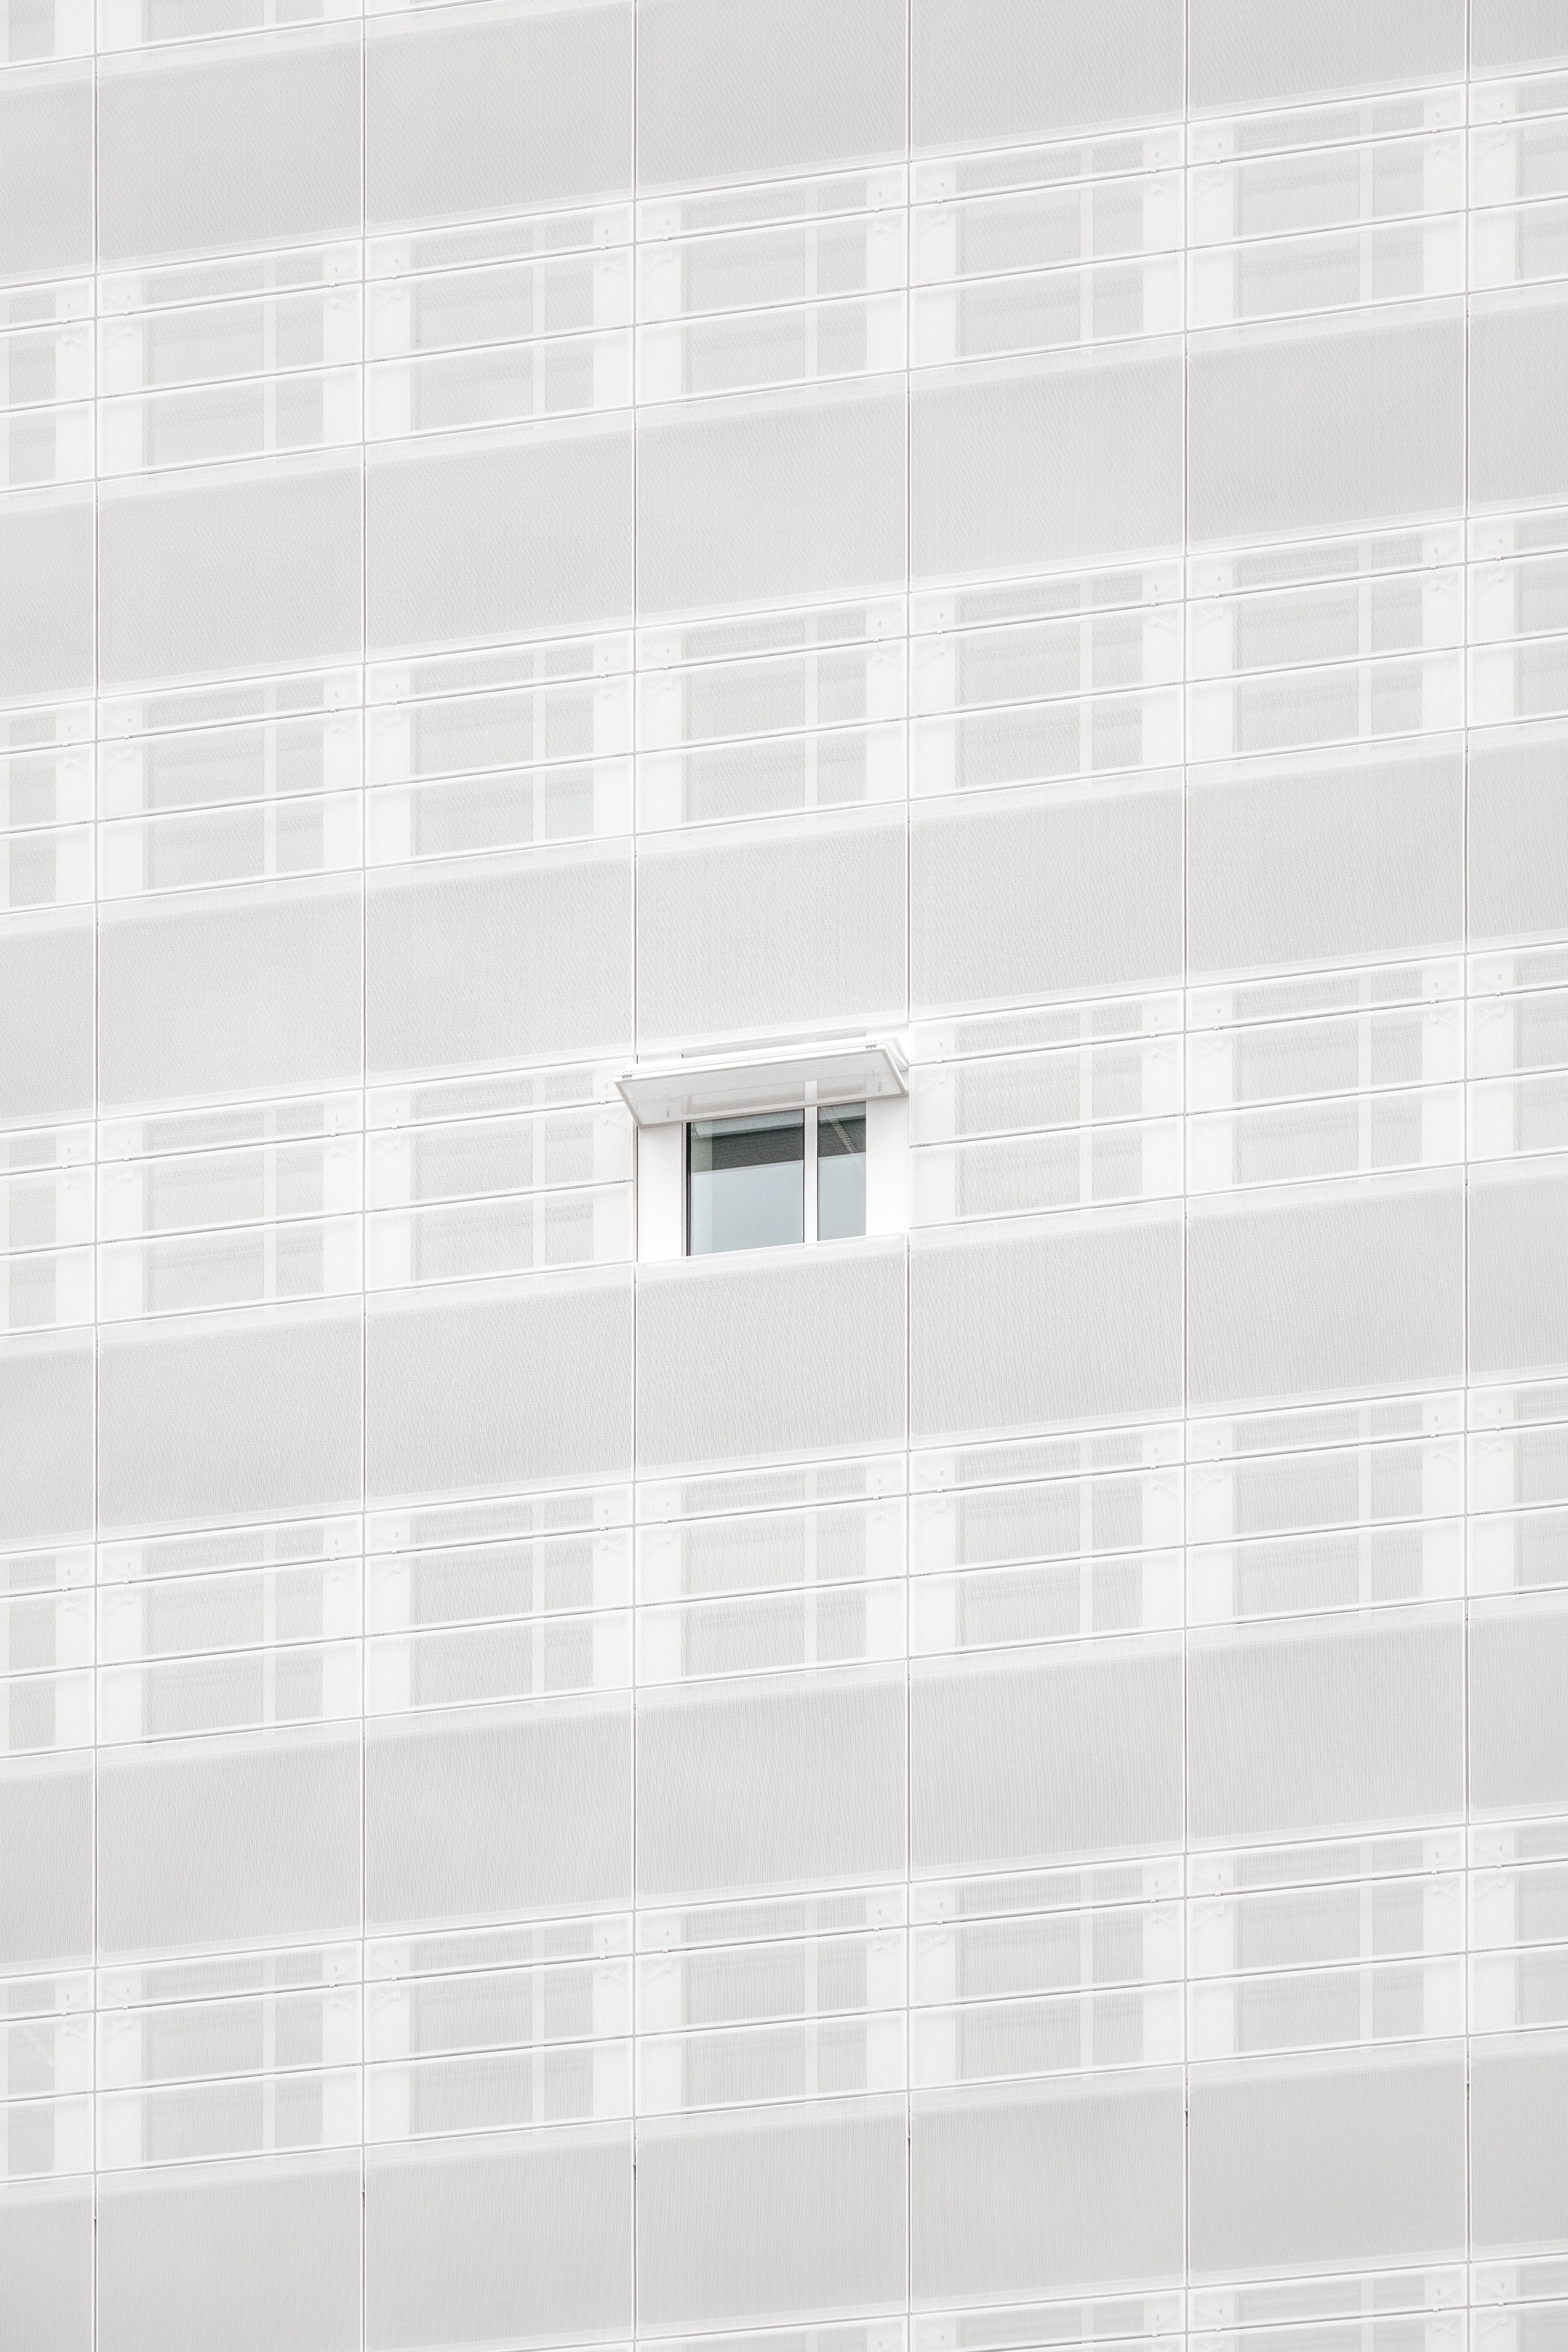 white opened window on building